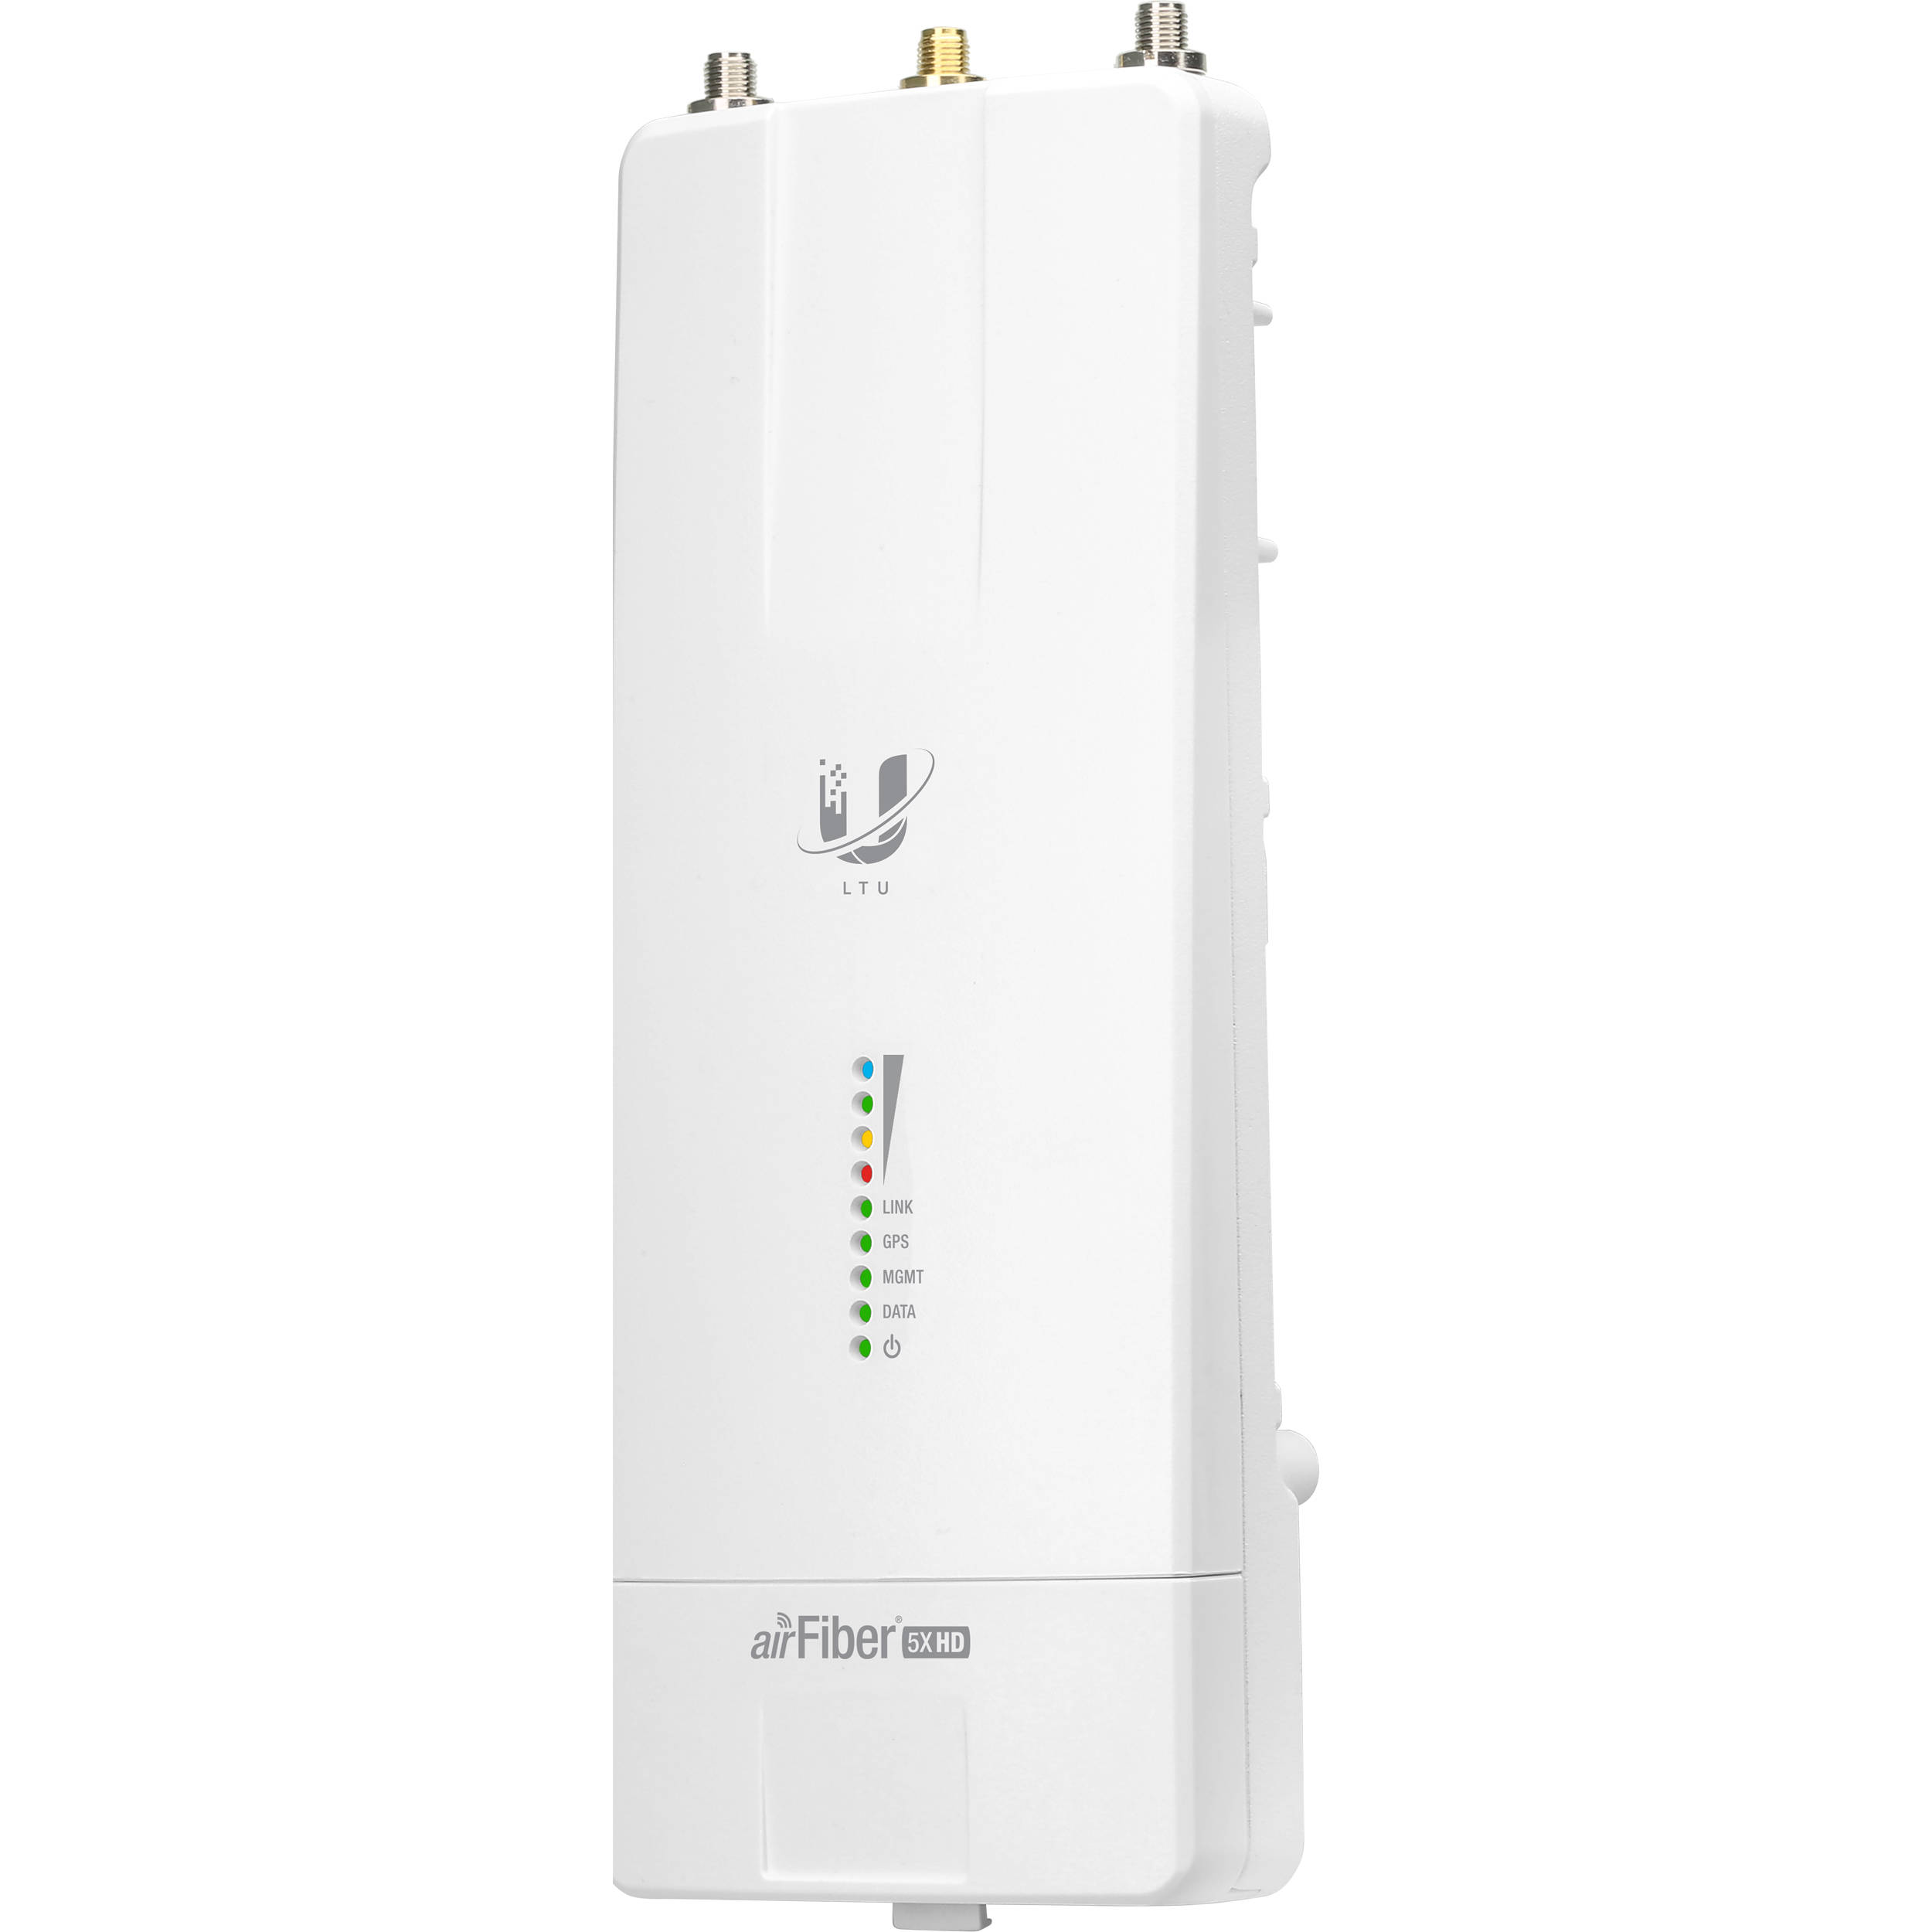 Https C Product 1389259 Reg Canon Eos 6d Kit 24 105mm F 40l Is Usm Wifi And Gps Ubiquiti Networks Af 5xhd Us Airfiber 5x Hd 1417390